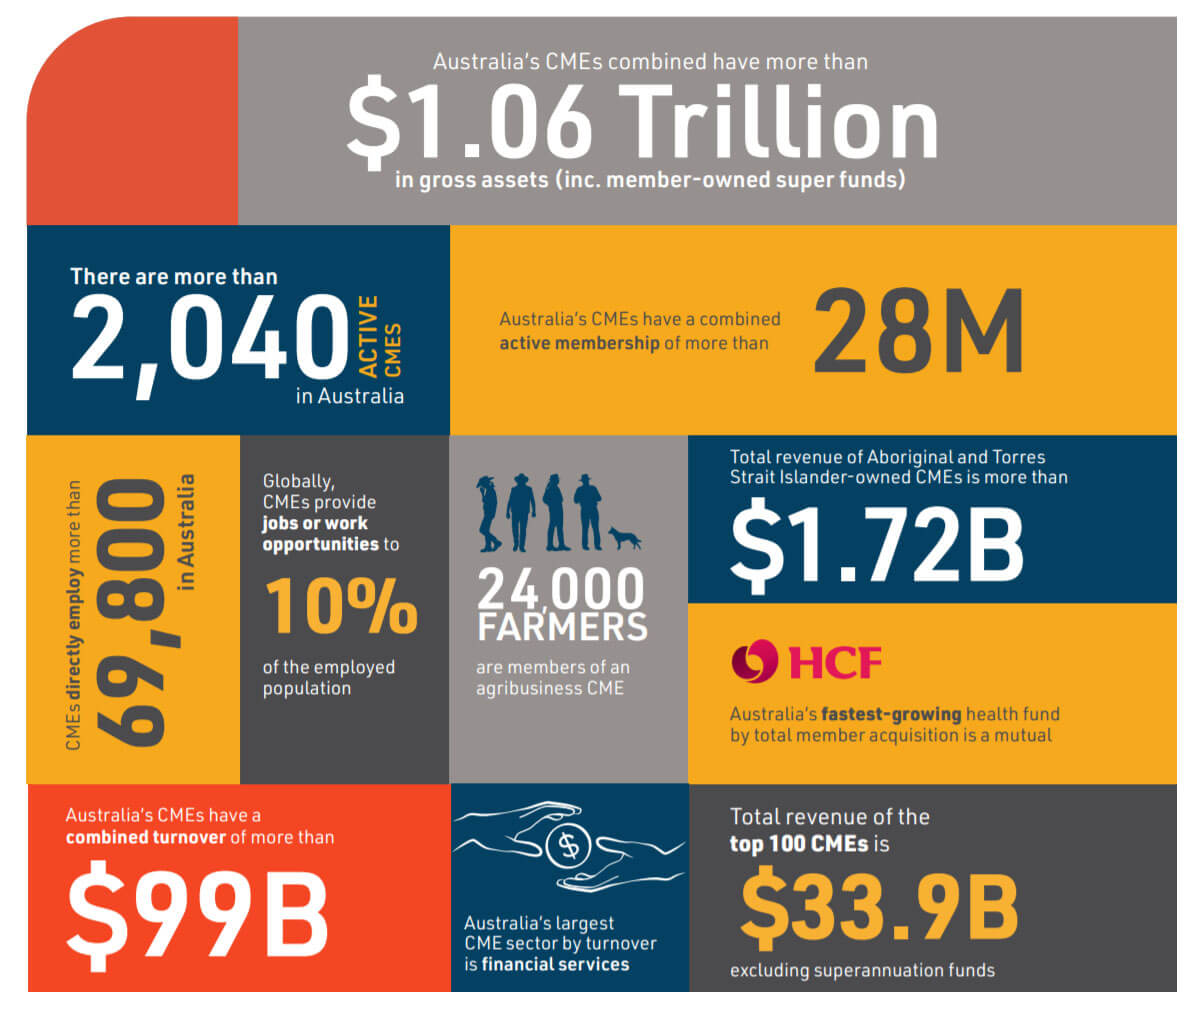 The Contribution of the CME Sector to the Australian Economy